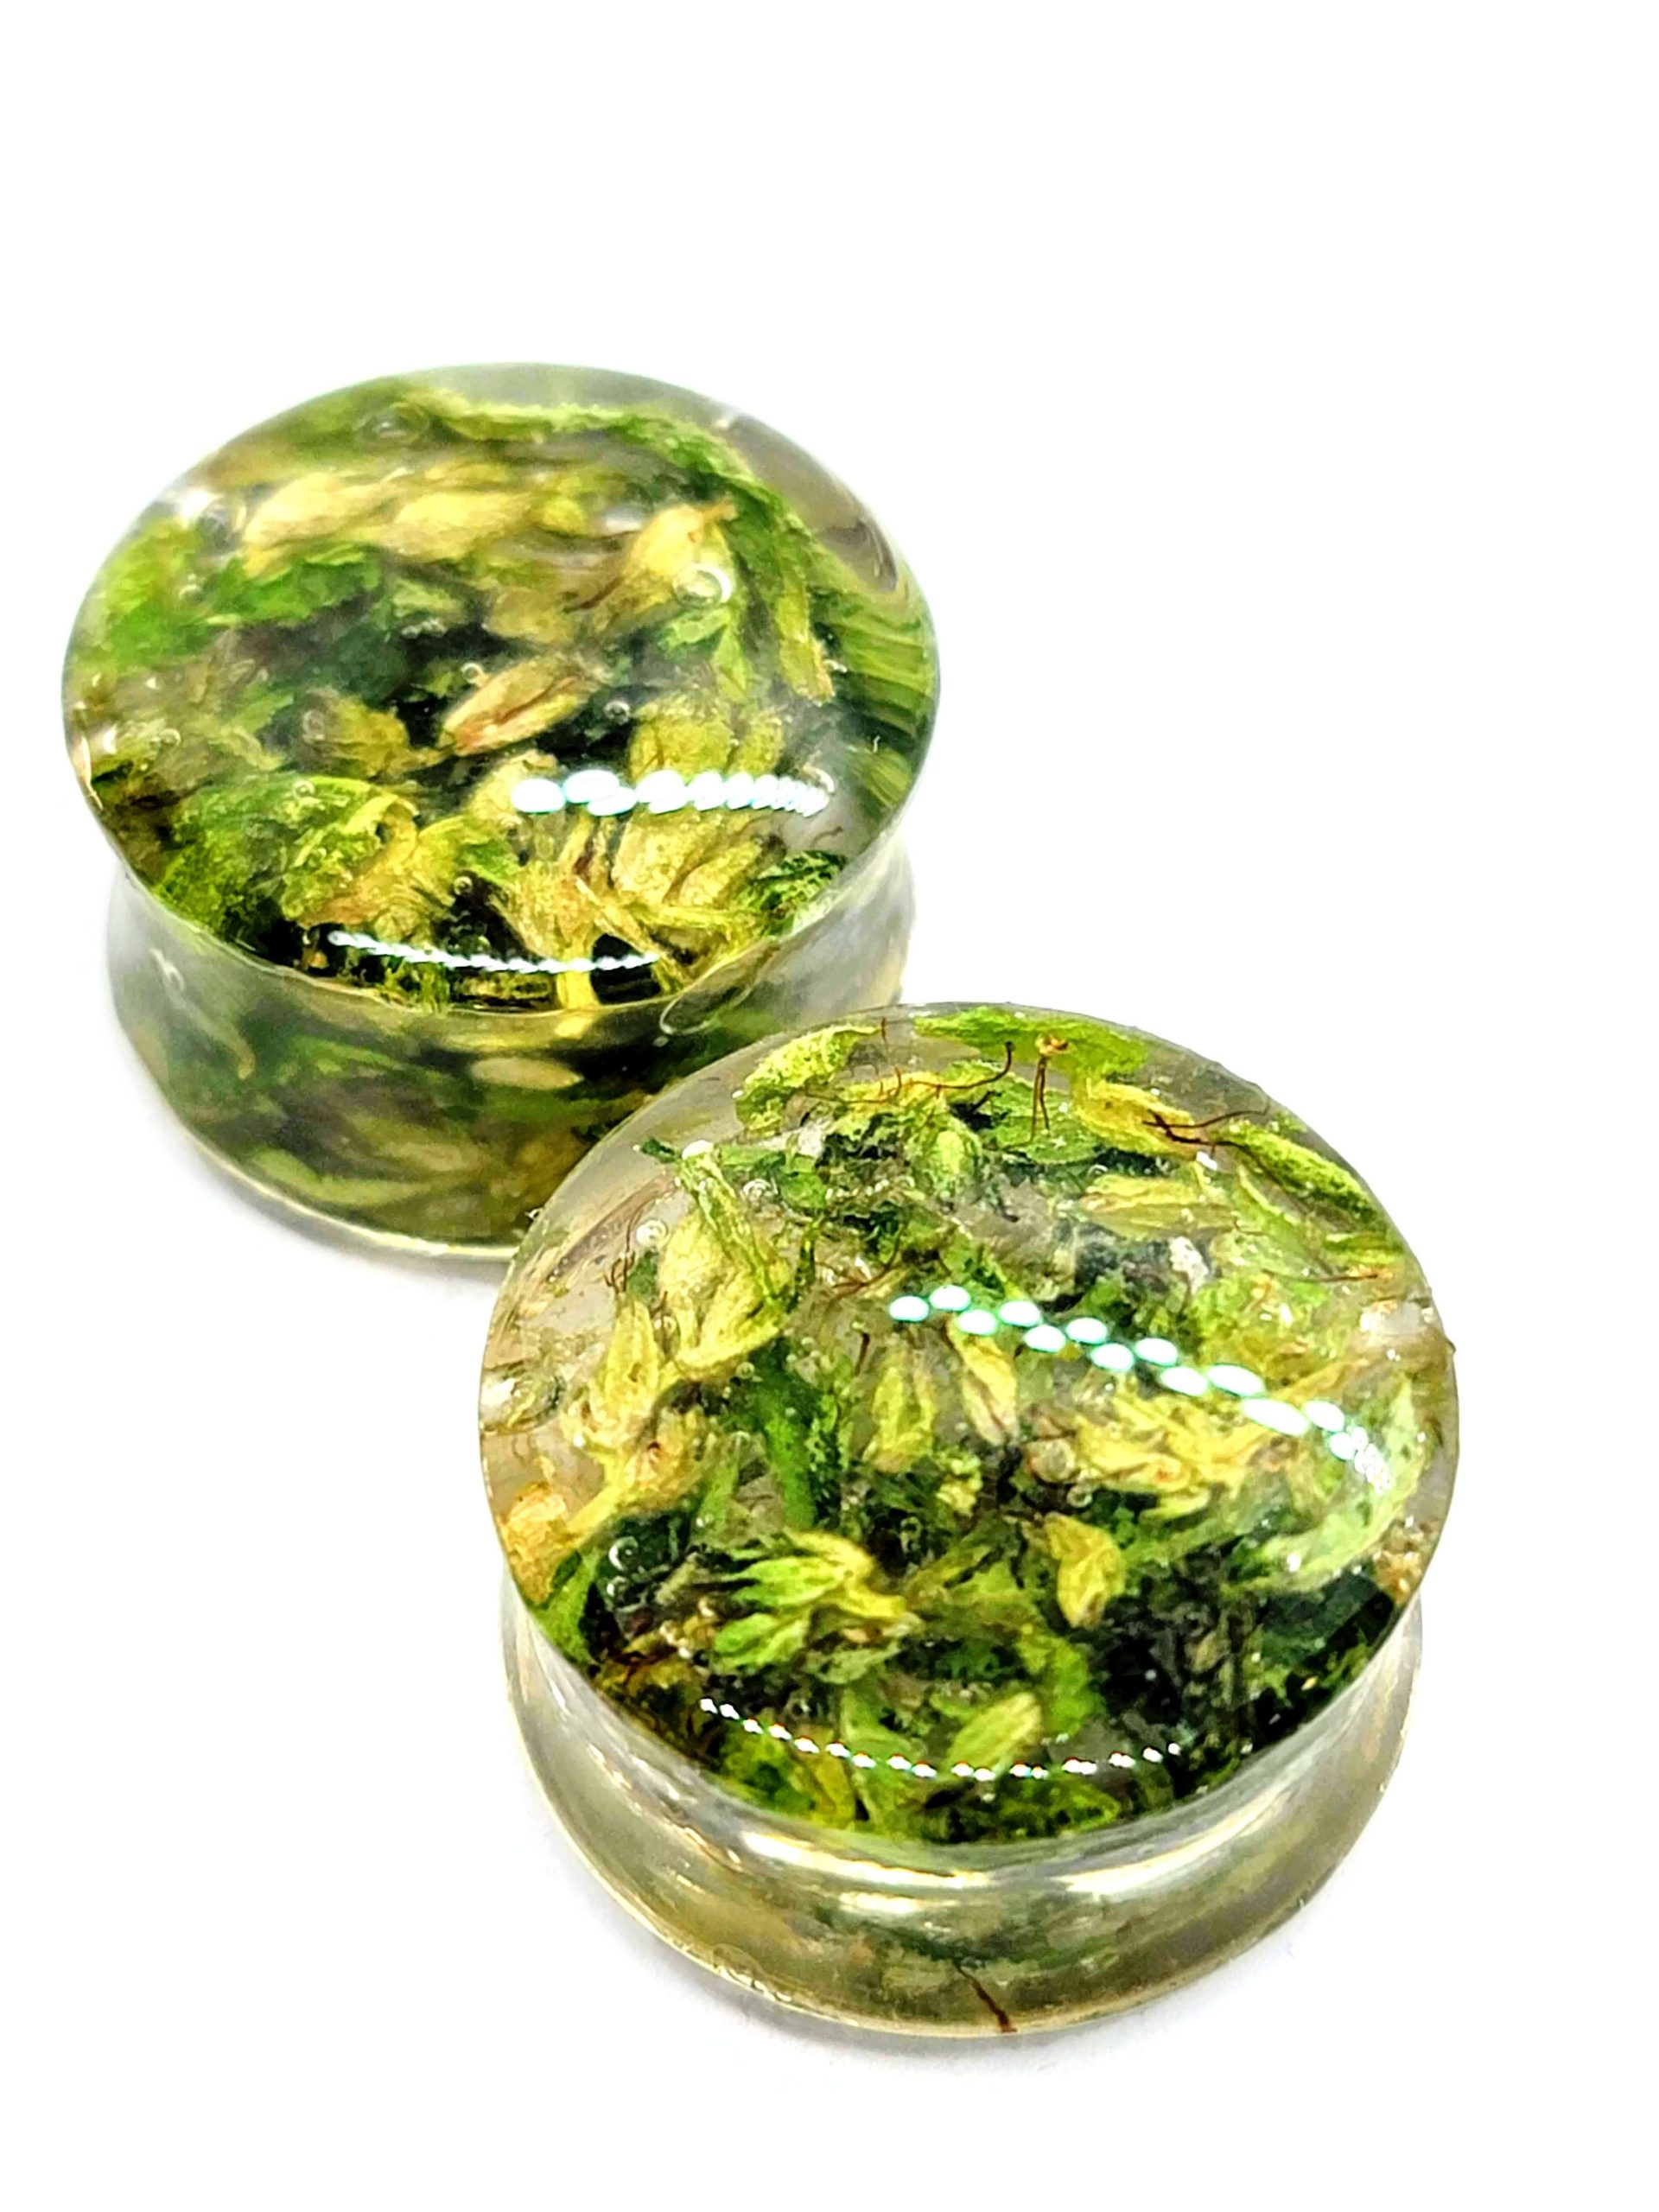 Nug Plugz – 8mm Real Cannabis Ear Plugs – Double Flare – Clear